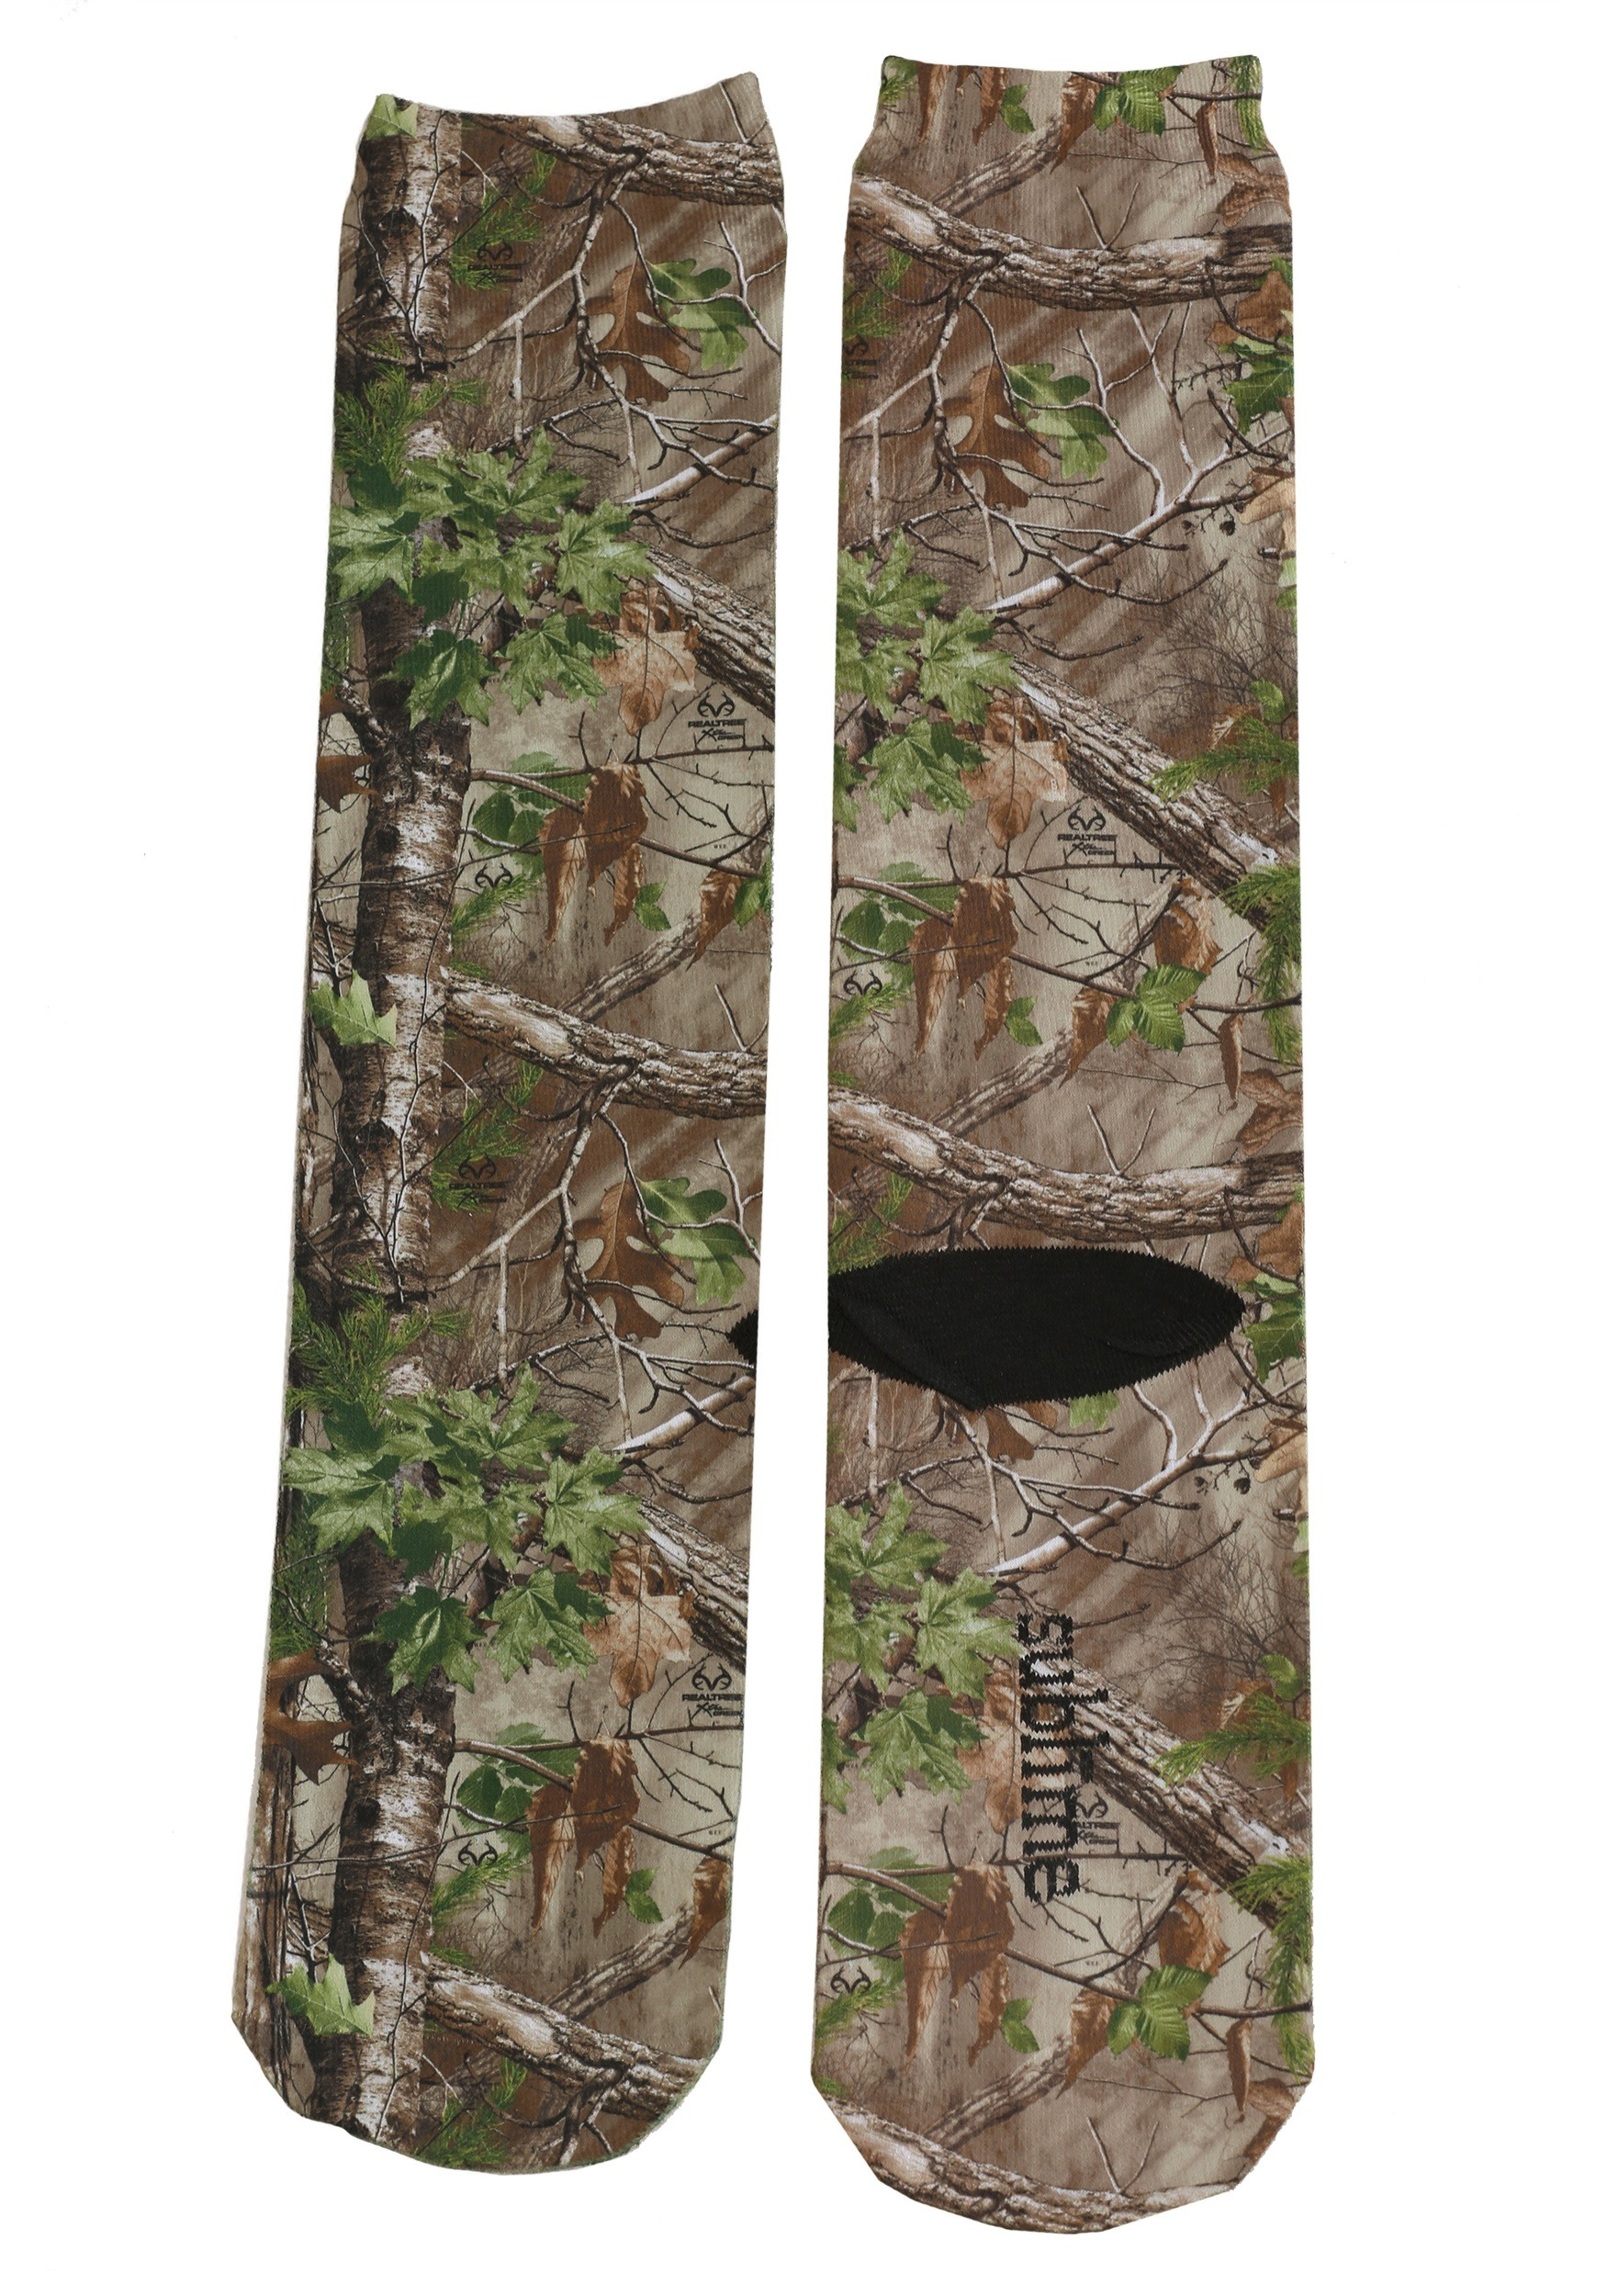 490fe1fc2dc Adult Realtree Camo Knee-High Socks